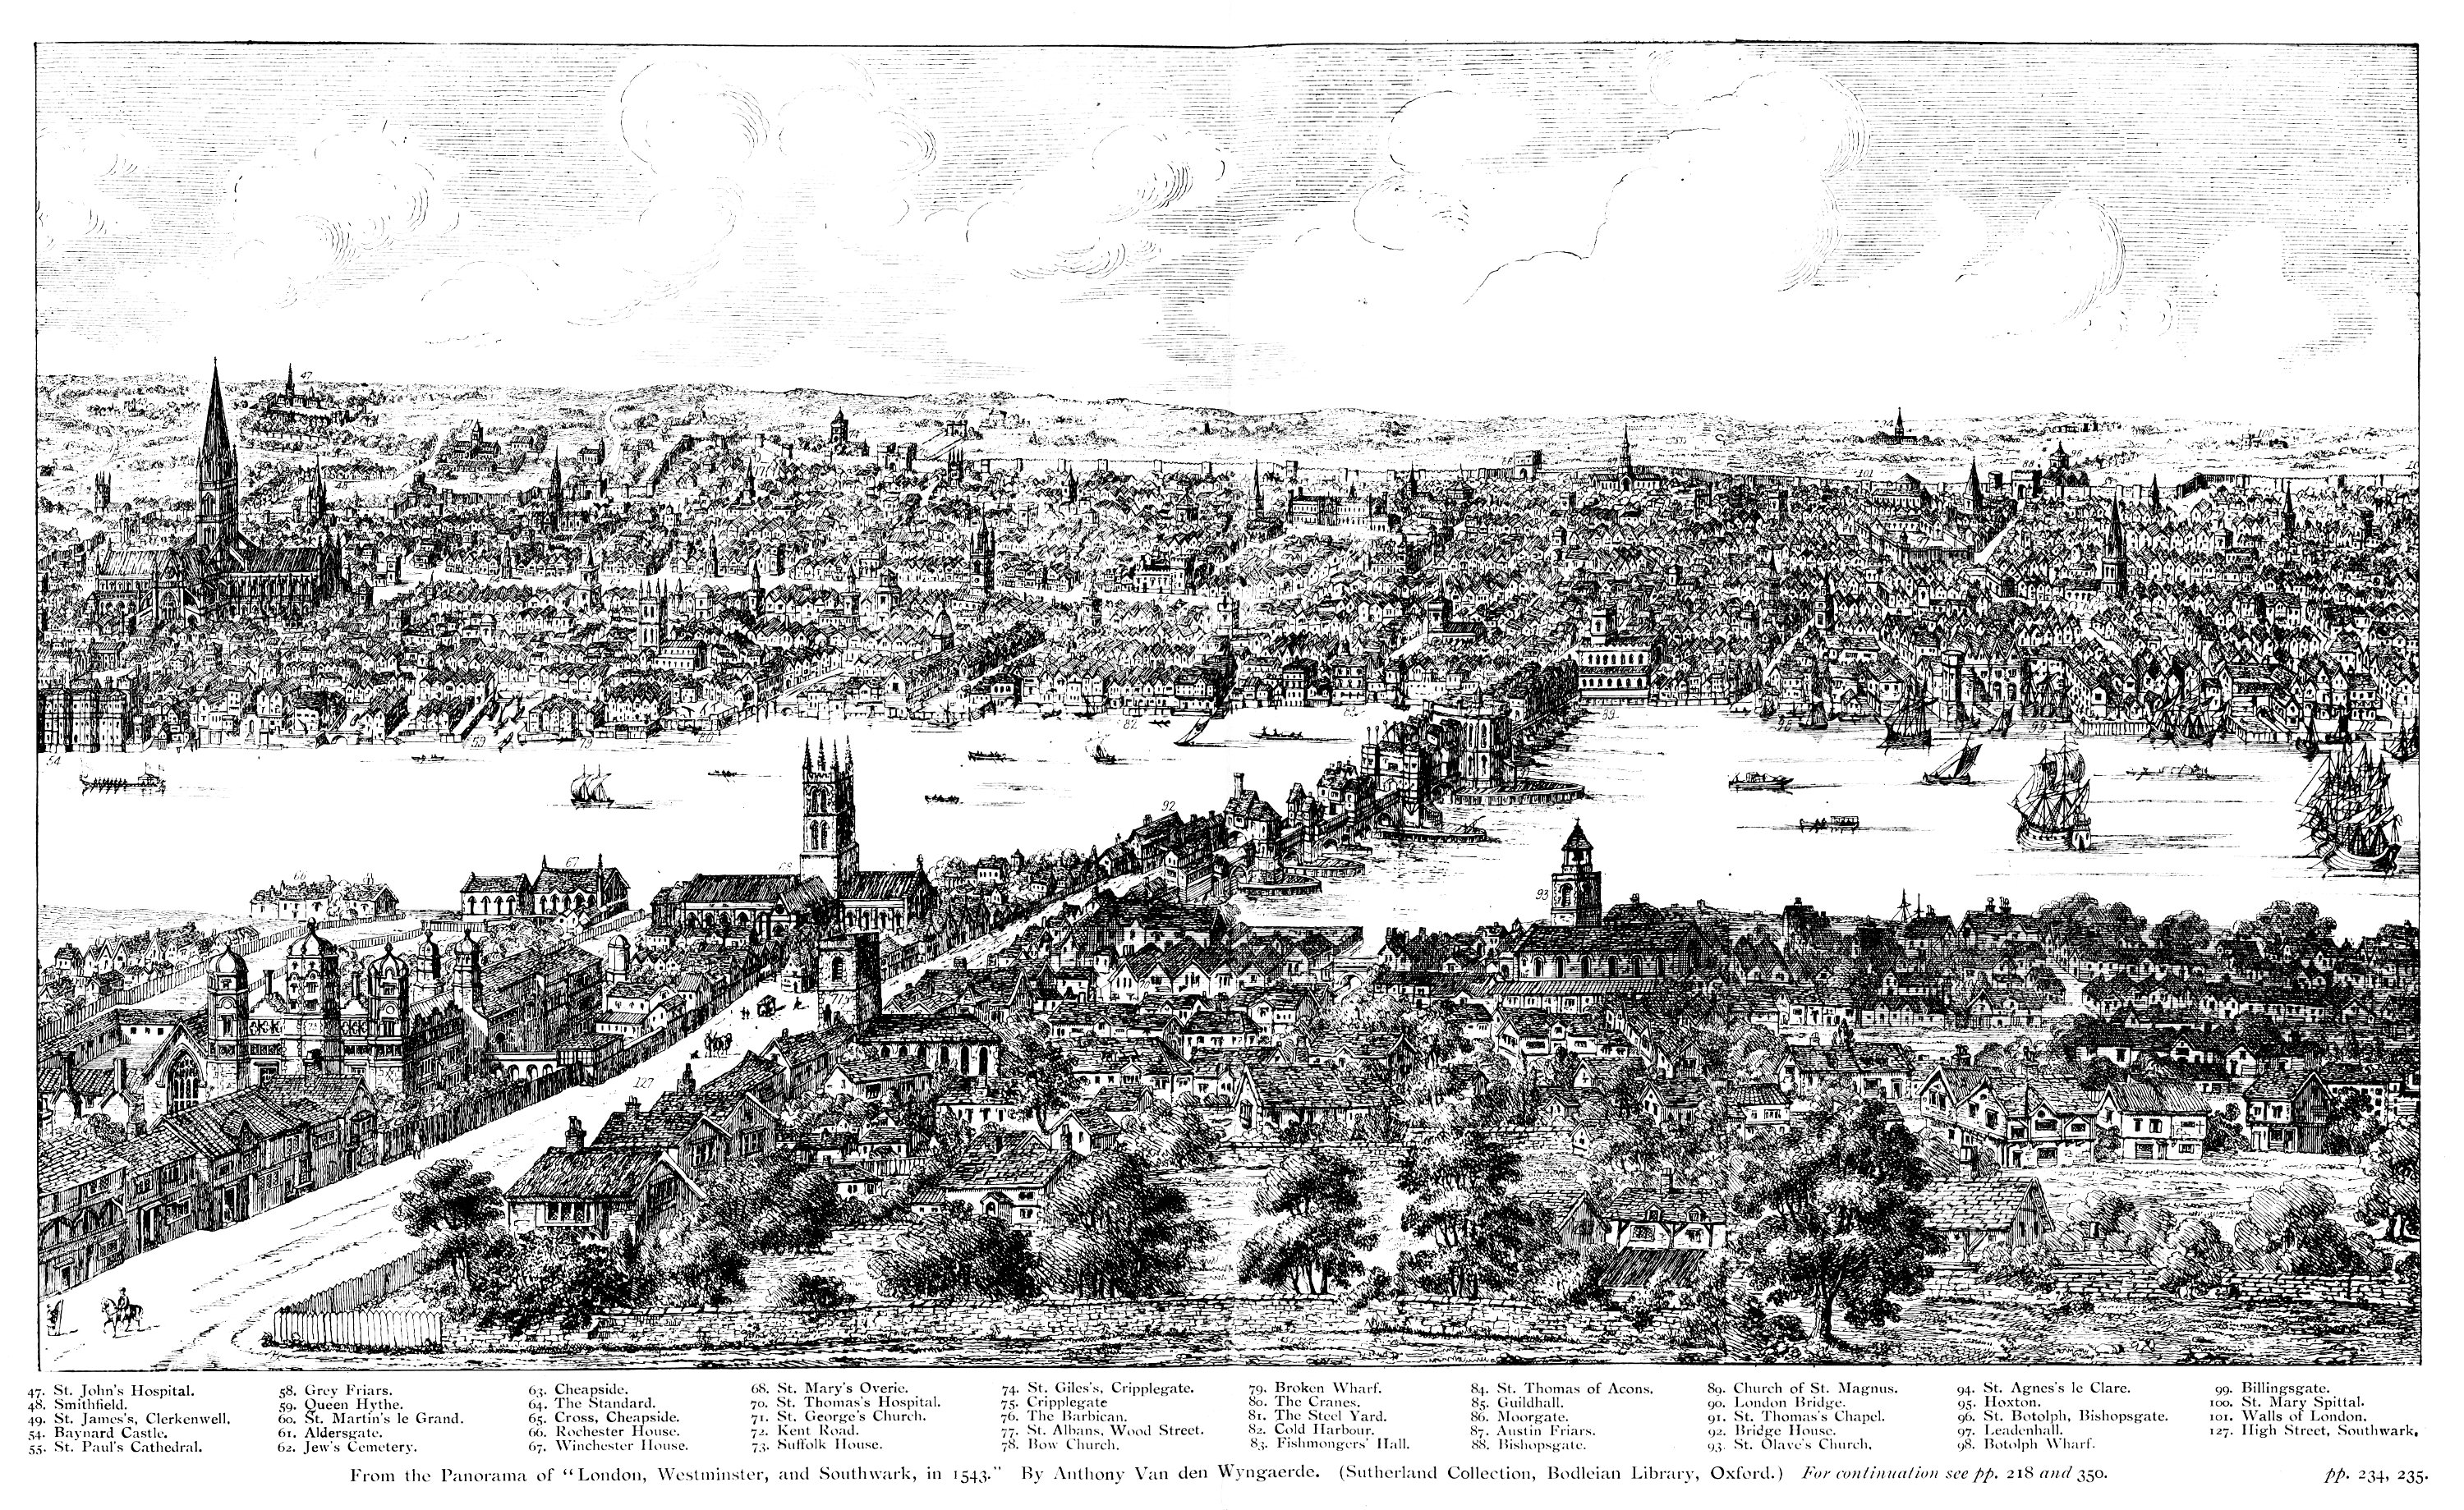 File:Panorama of London in 1543 Wyngaerde Section 2.jpg